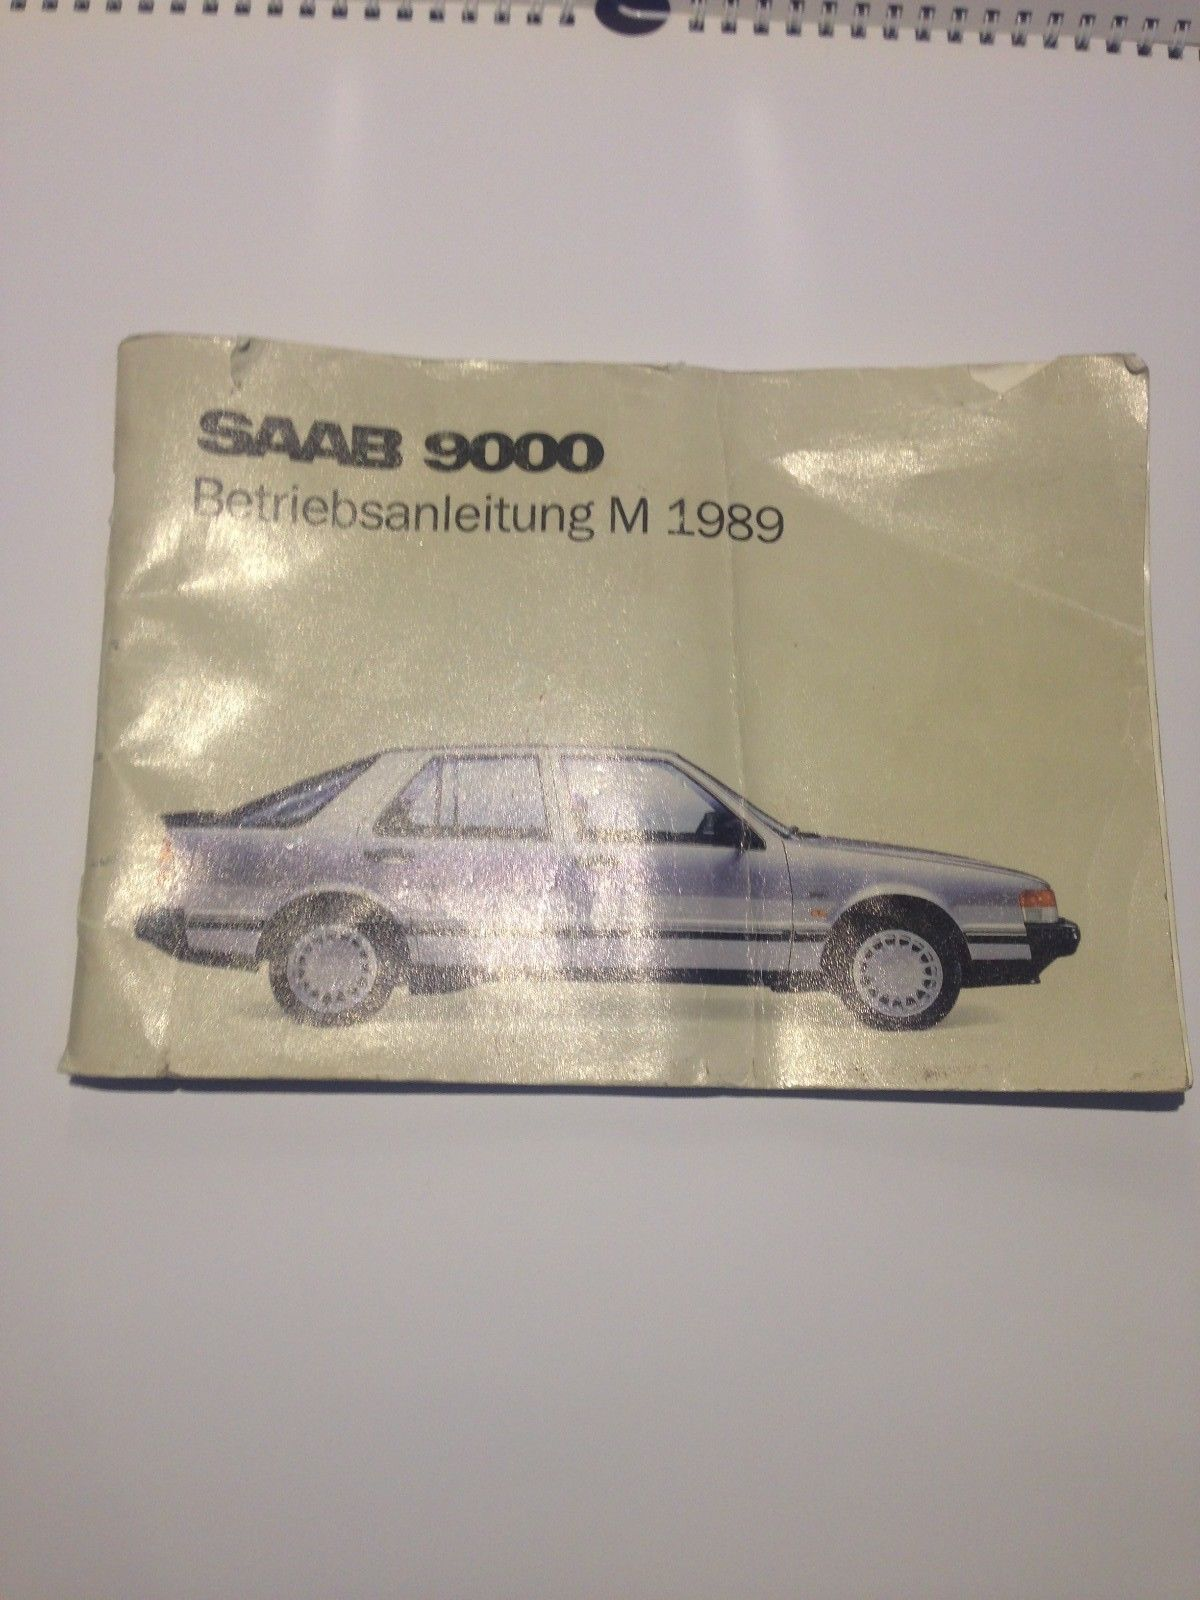 Used owners manual Book Saab 9000 model year 1989 in eBay Motors, Parts &  Accessories, Manuals & Literature, Car & Truck Manuals, Other Car Manuals |  eBay